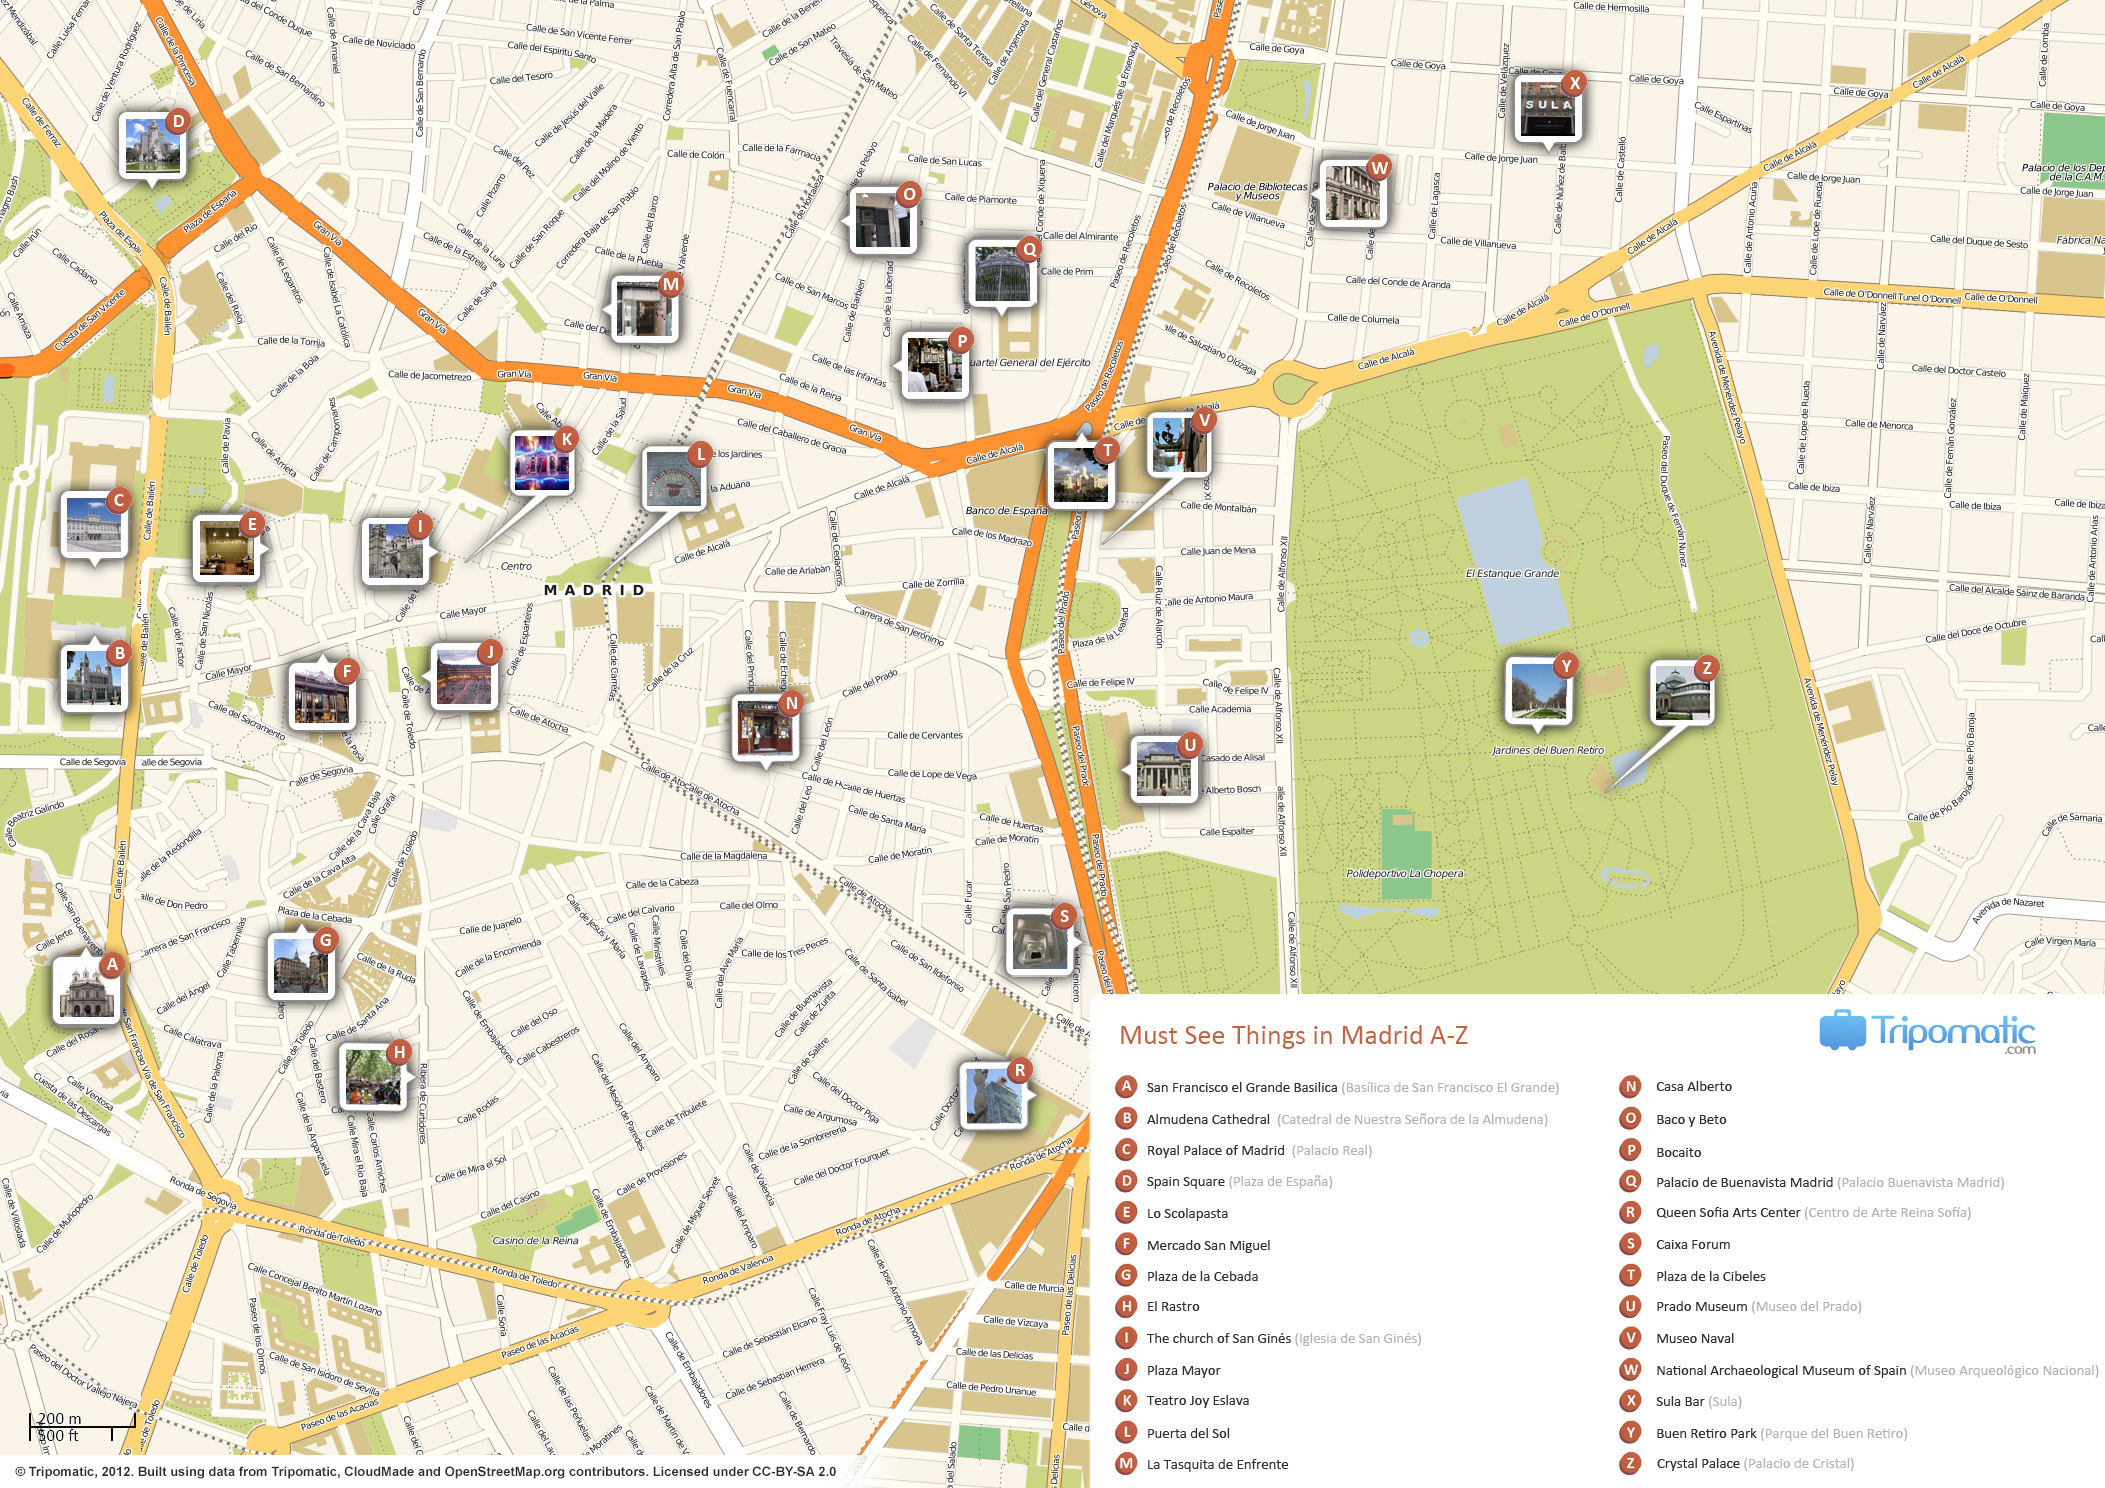 Madrid Printable Tourist Attractions Map